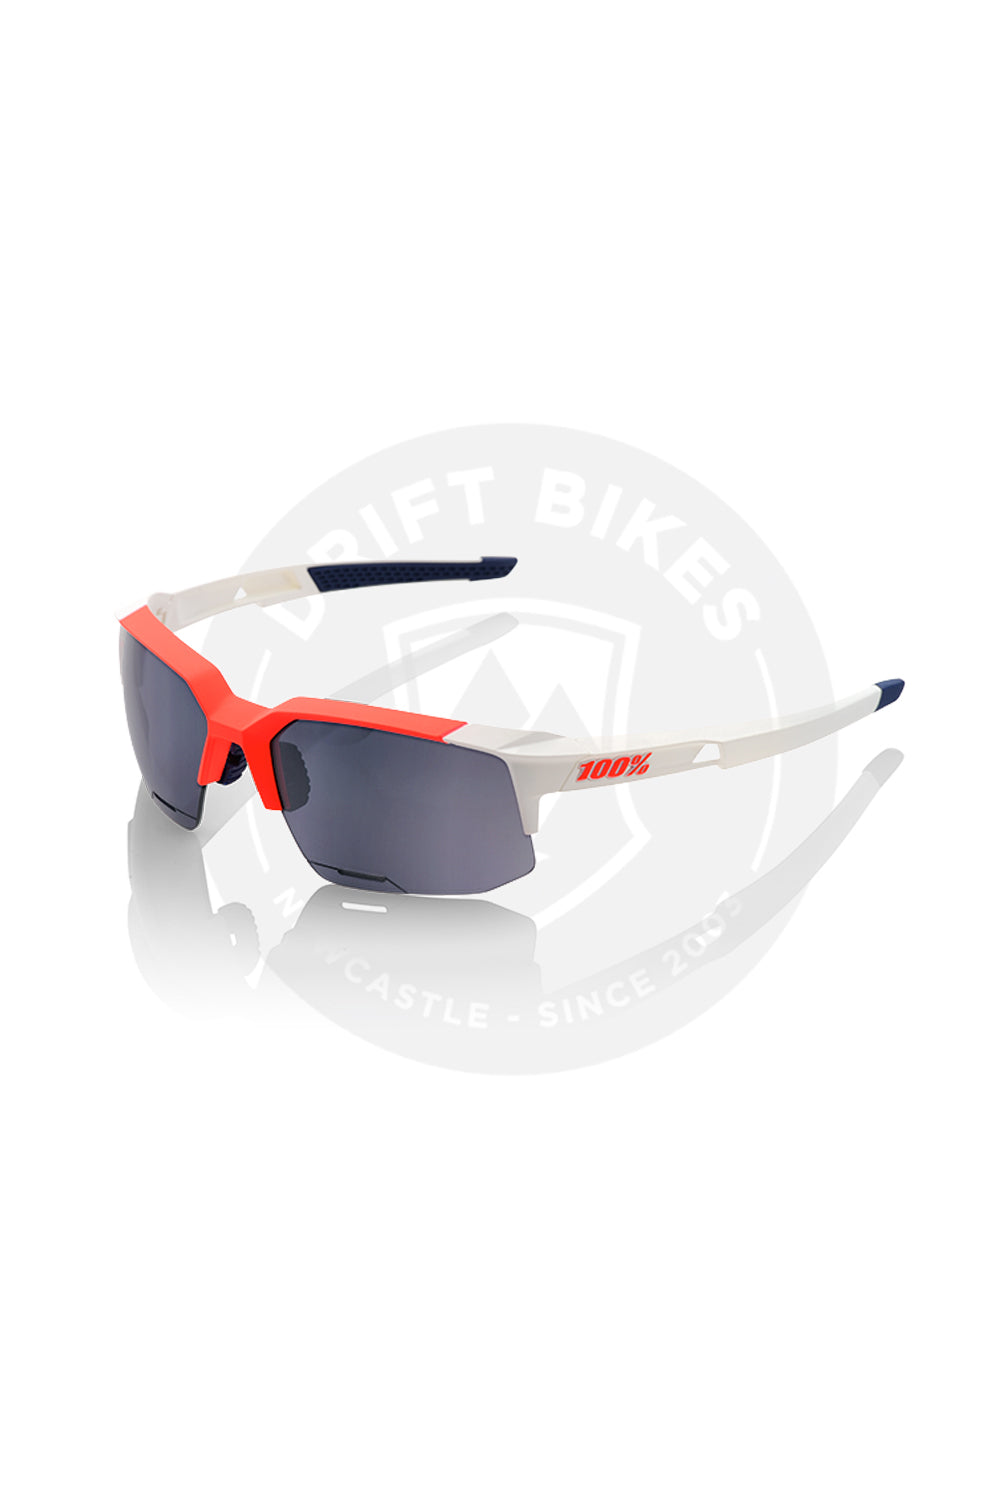 100%. SPEEDCOUPE PERFORMANCE SUNGLASSES - LONG LENS - GAMMA RAY, MIRROR LENS